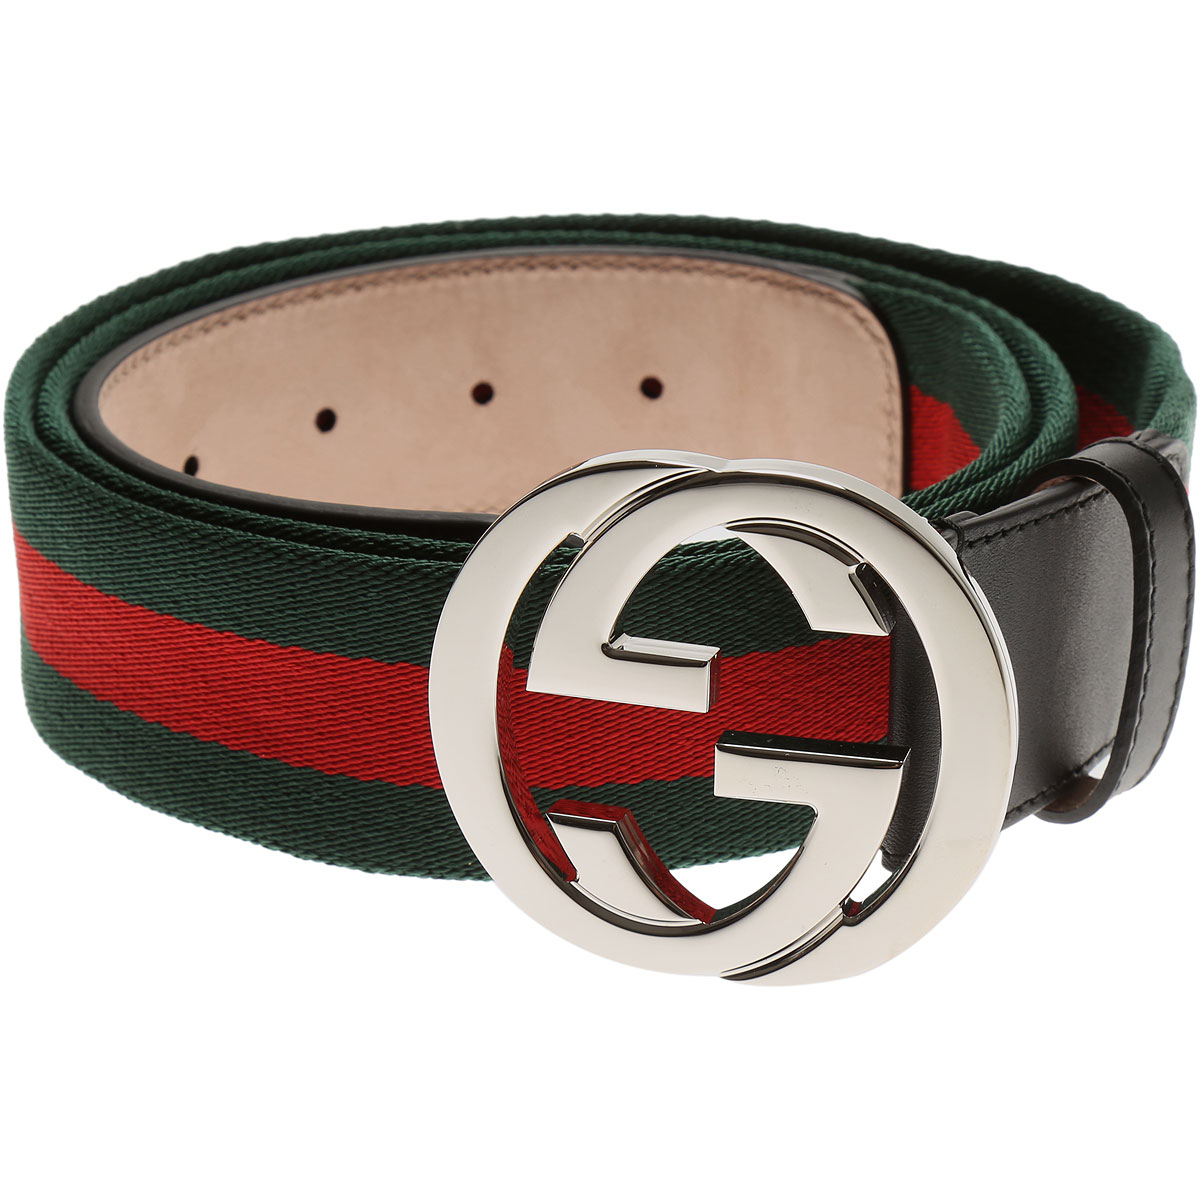 Mens Belts Gucci, Style code: 411924-h917n-1060